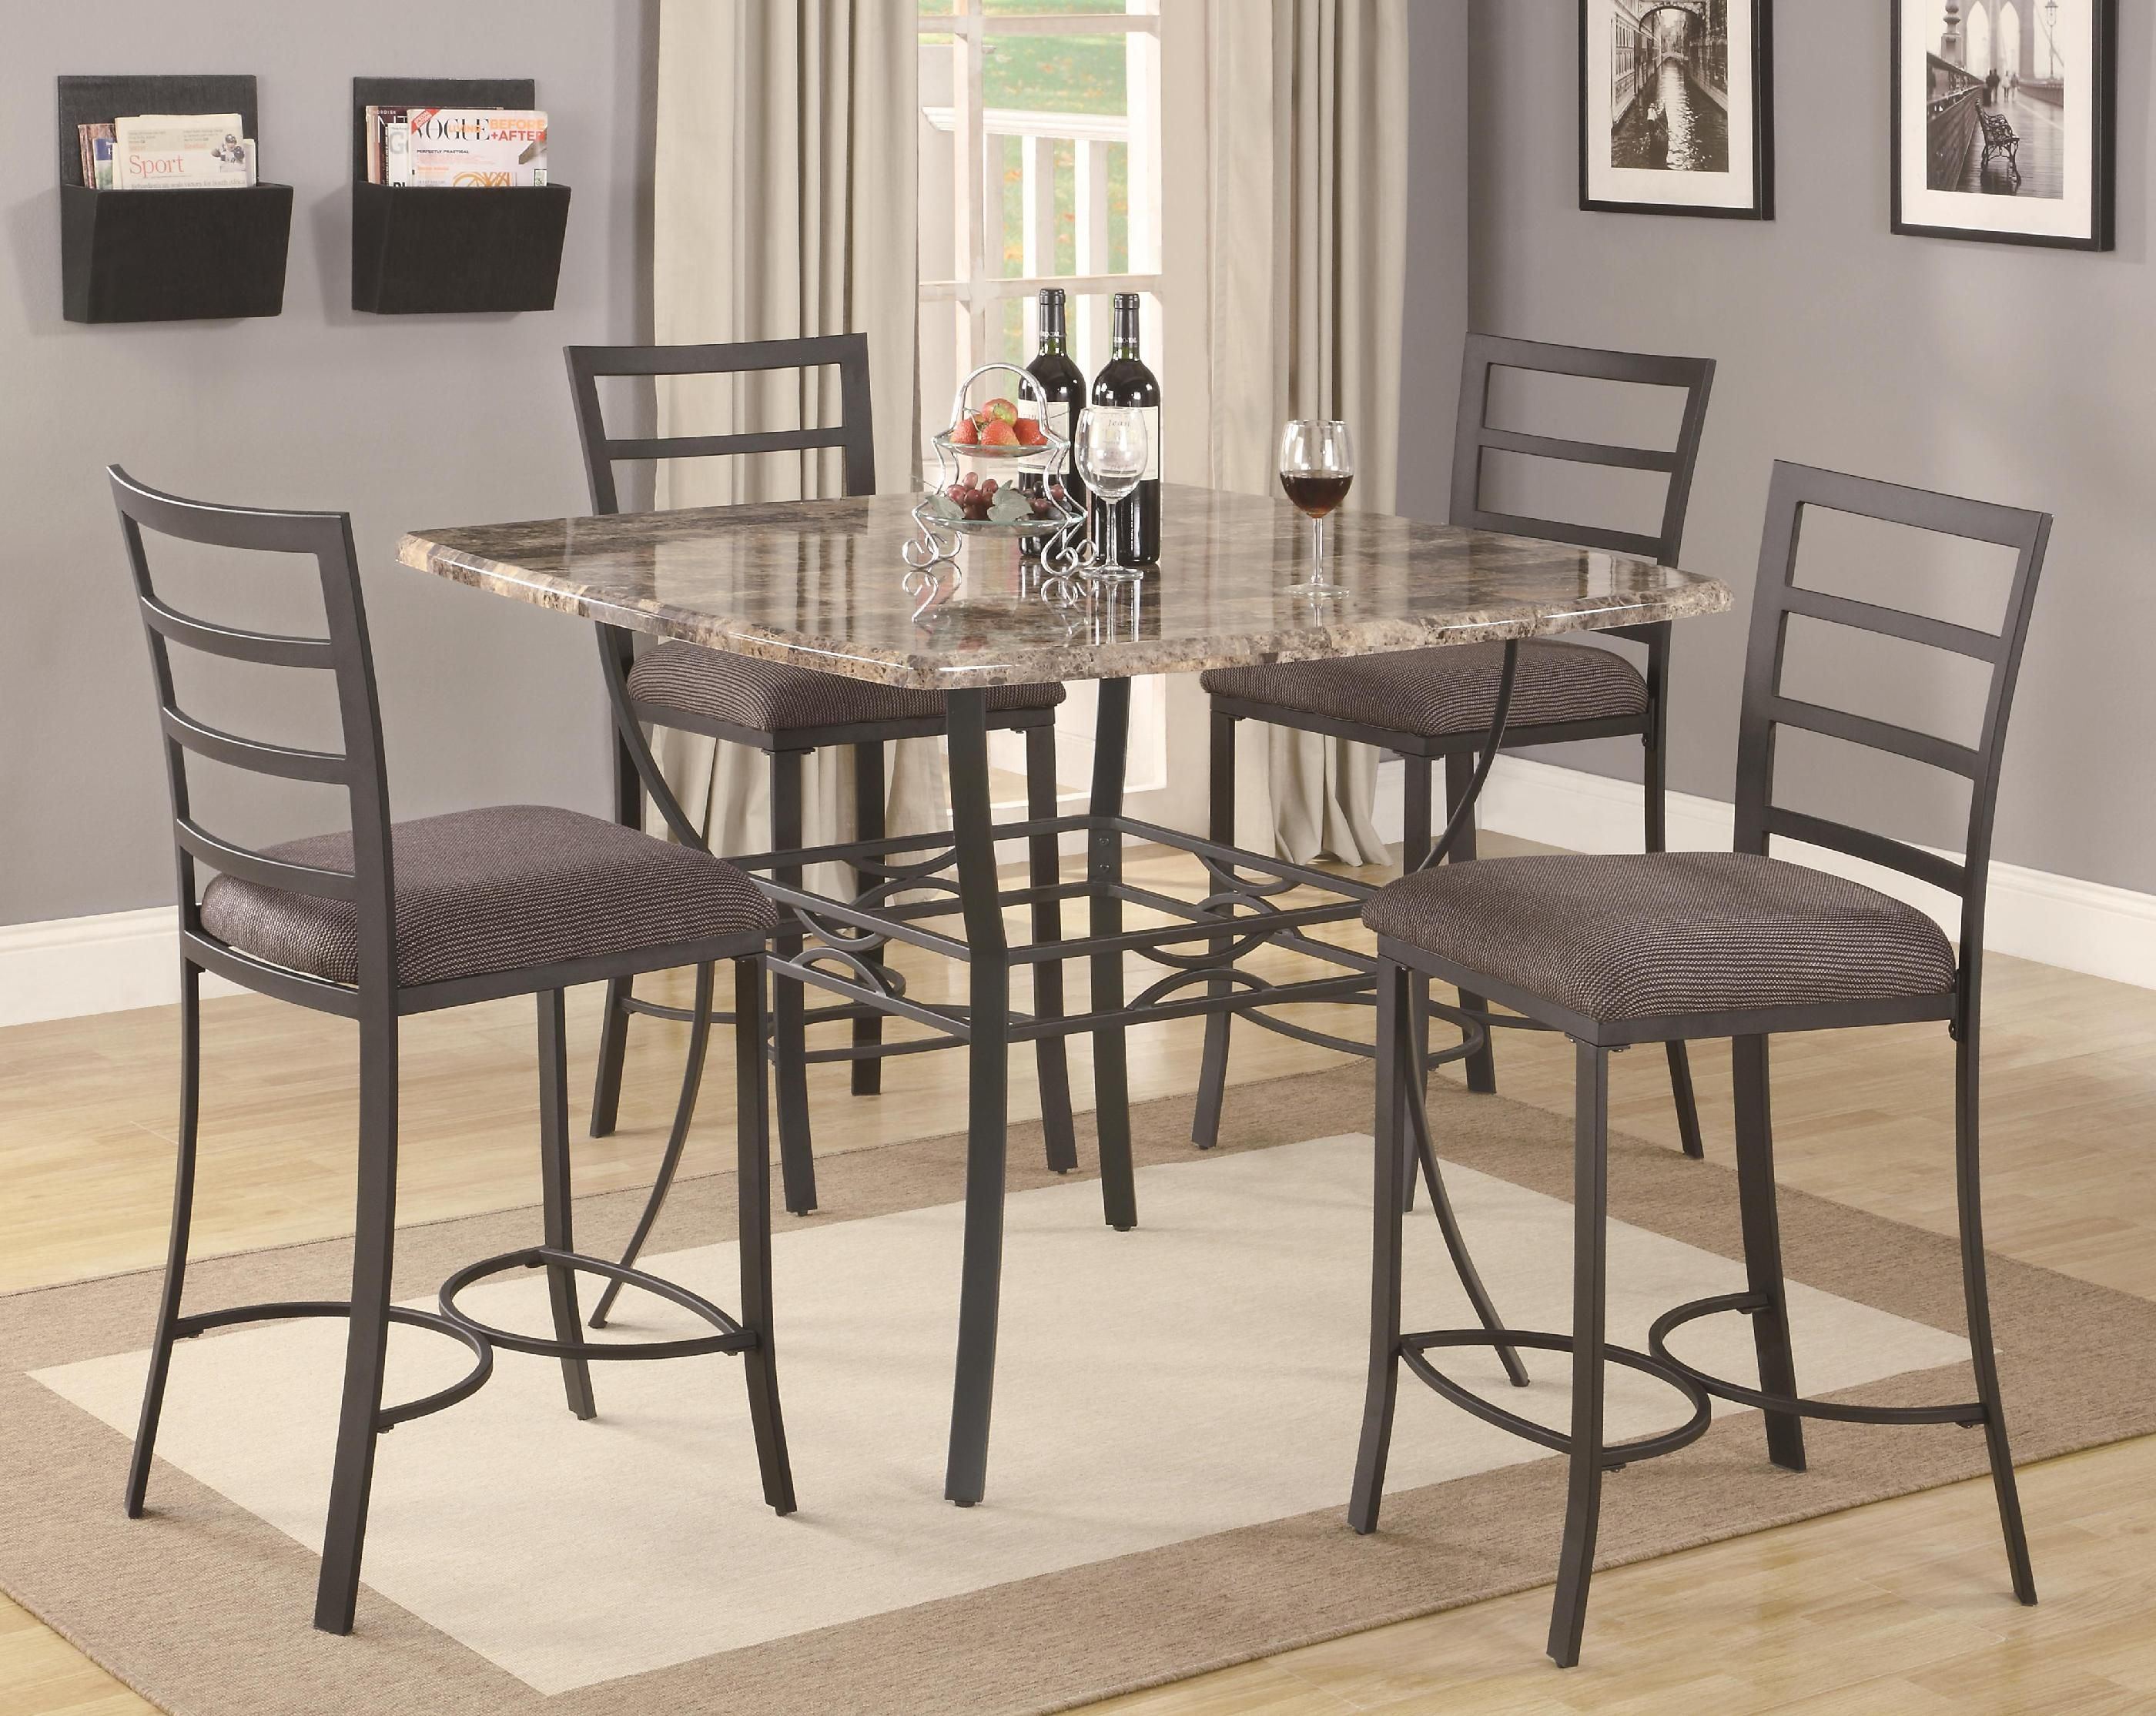 Granite Dining Room Furniture Chic Stainless Steel Counter Height Bar Stools With Comfy Pad